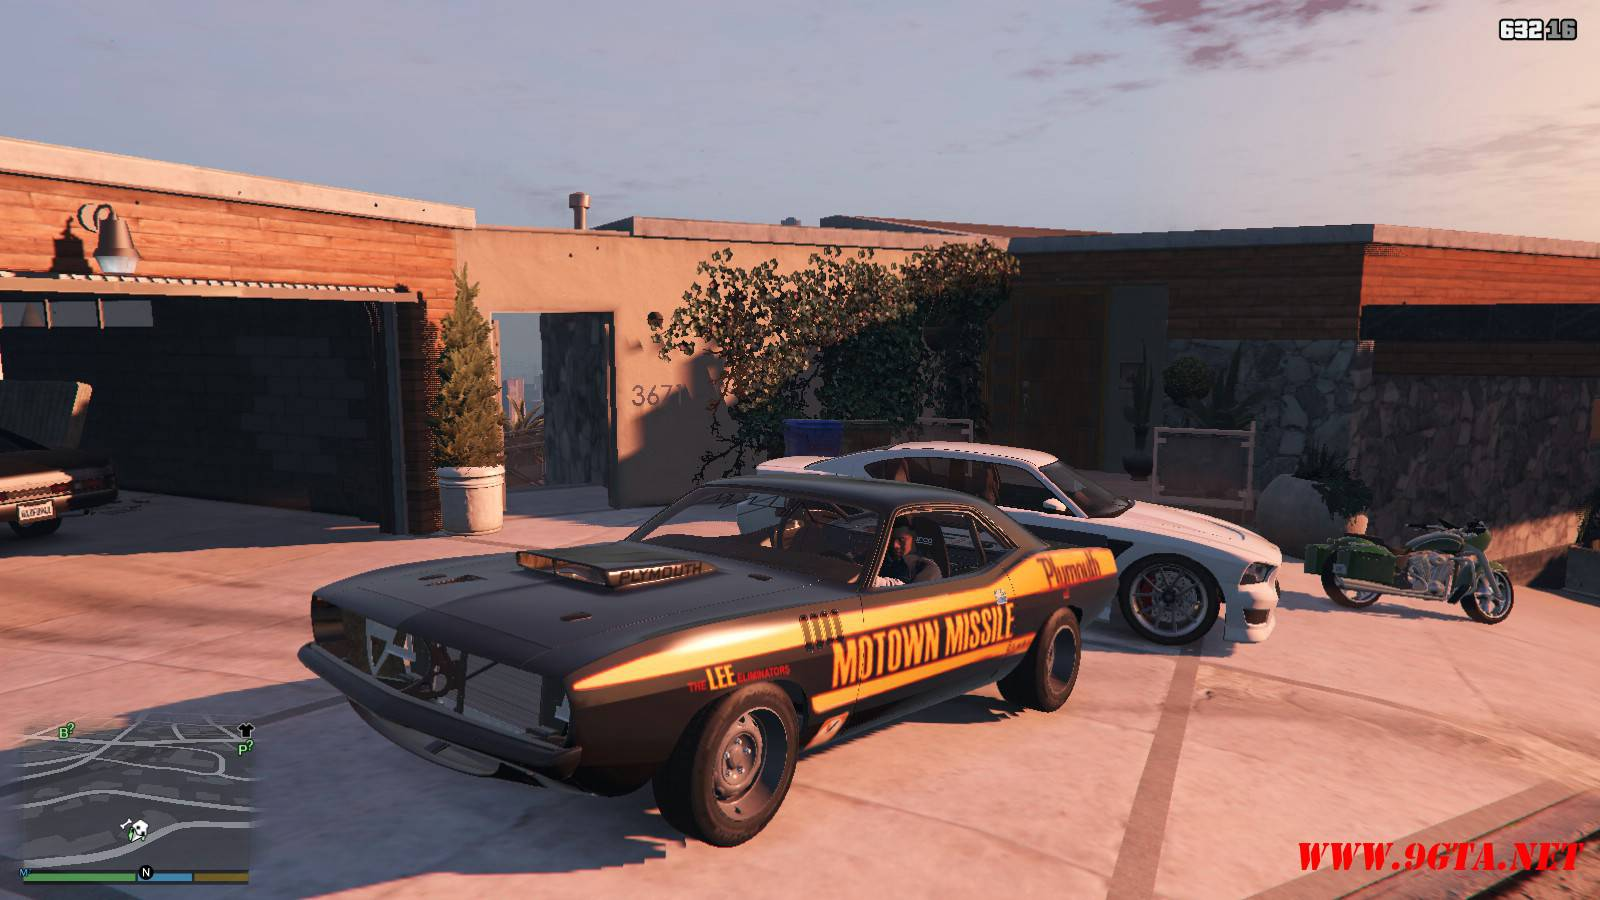 Plymouth Kuda Beck Customs Mod For GTA5 (1)